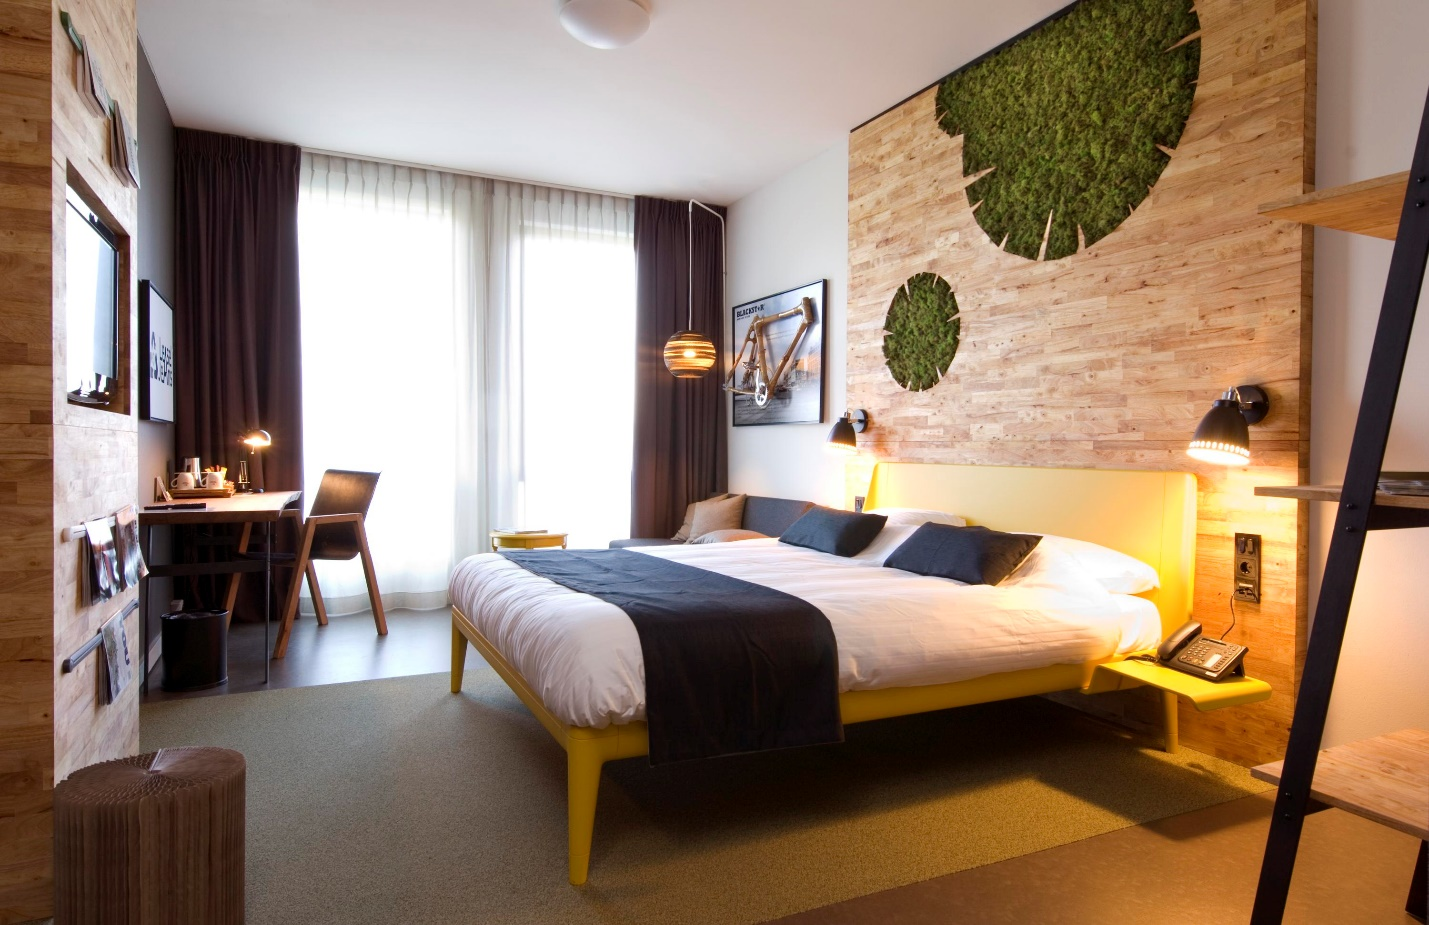 Green Hotel Room with Natural Light, a green wall and sustainable materials